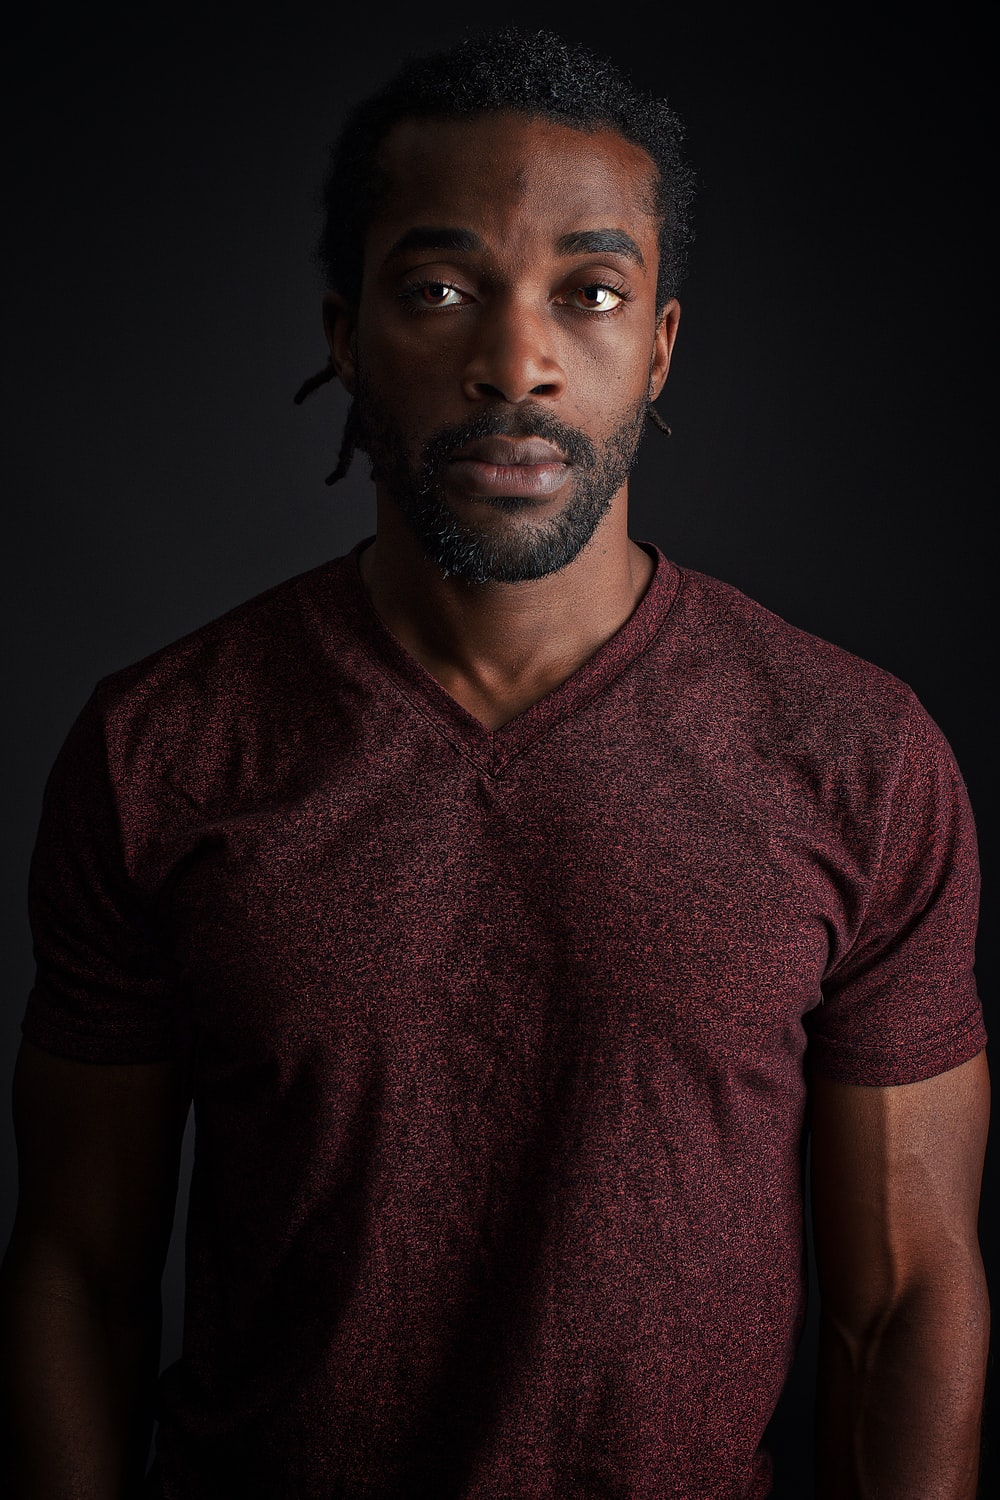 man wearing red v-neck shirt close-up photography